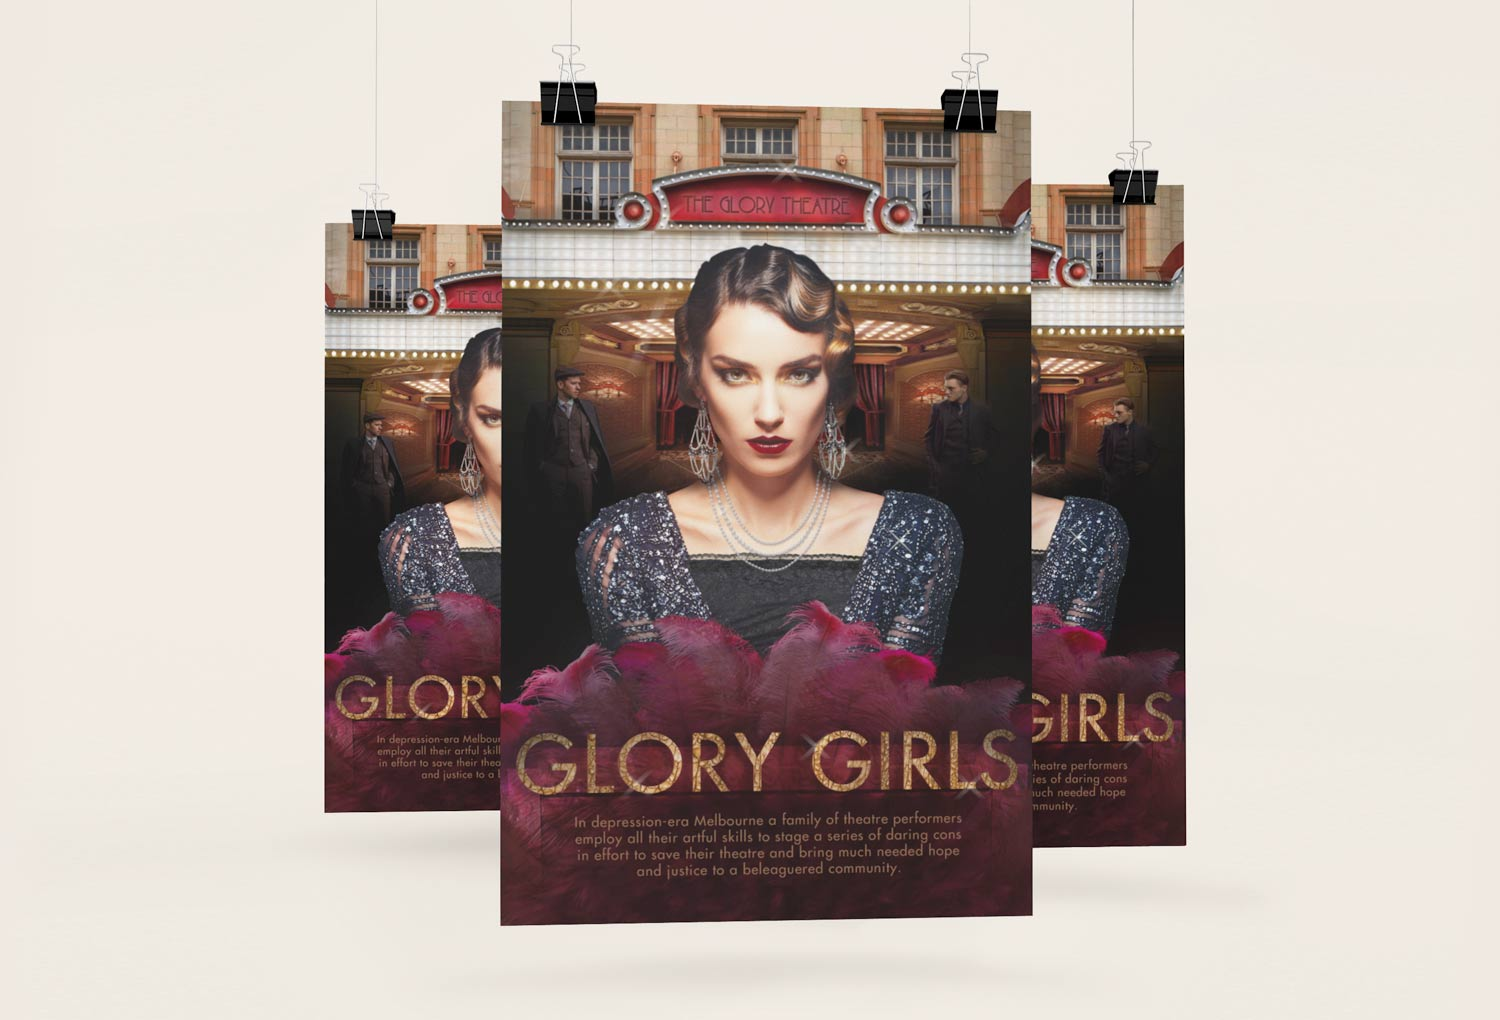 Glory Girls TV Series Pitch Poster Graphic Design By Mango Tree Media